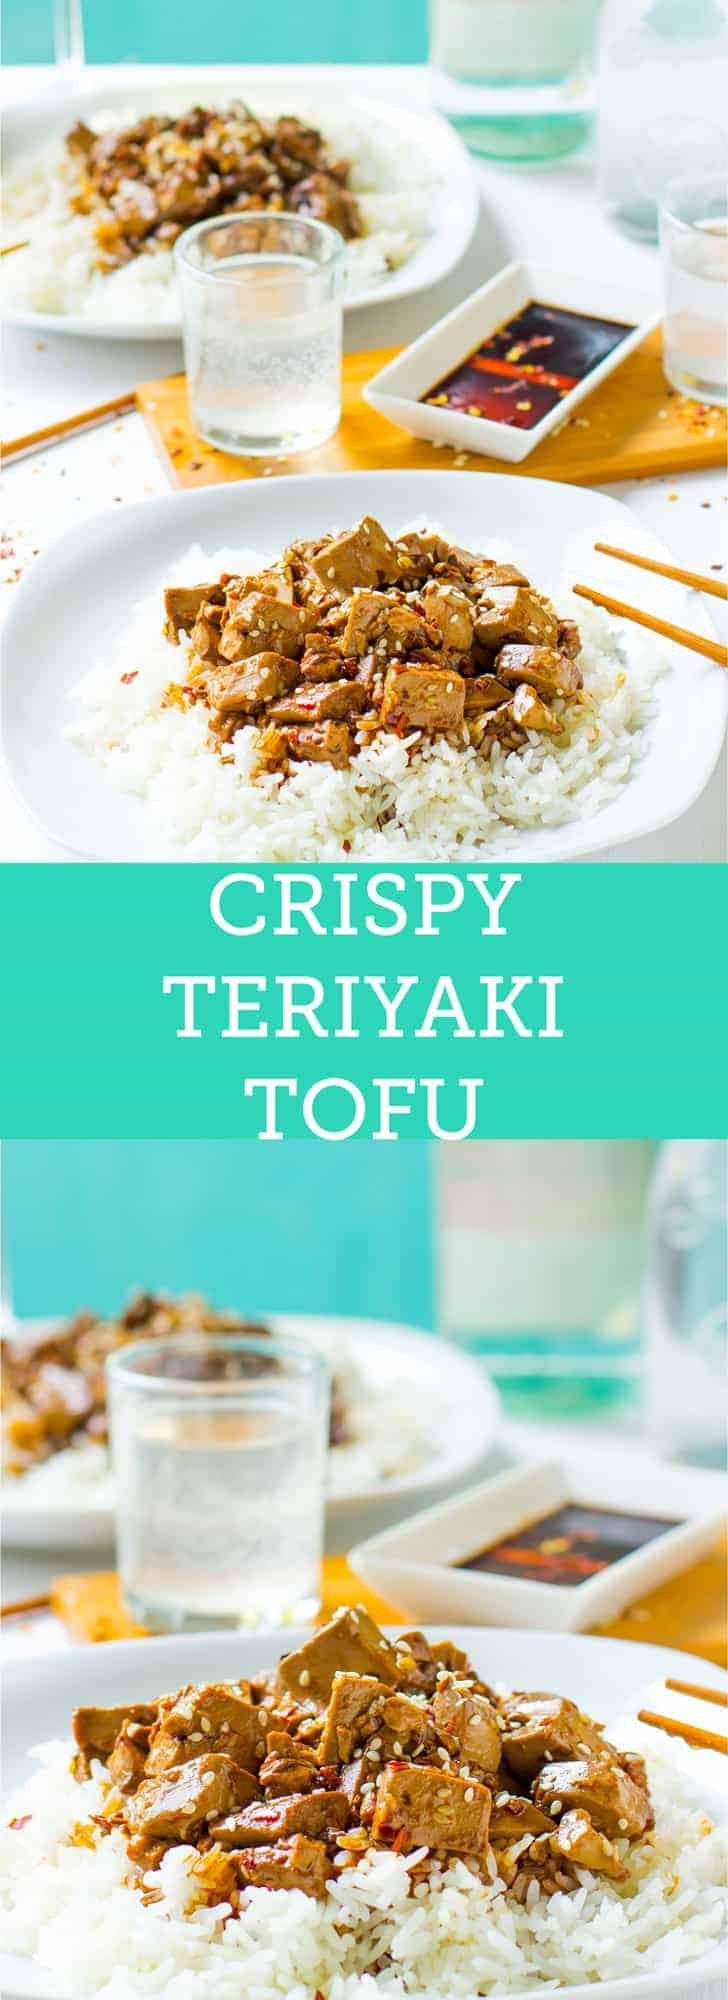 This Crispy Teriyaki Tofu is a quick, incredibly flavourful, make ahead dish! It's WAY better than takeout and perfect for weeknight dinners.